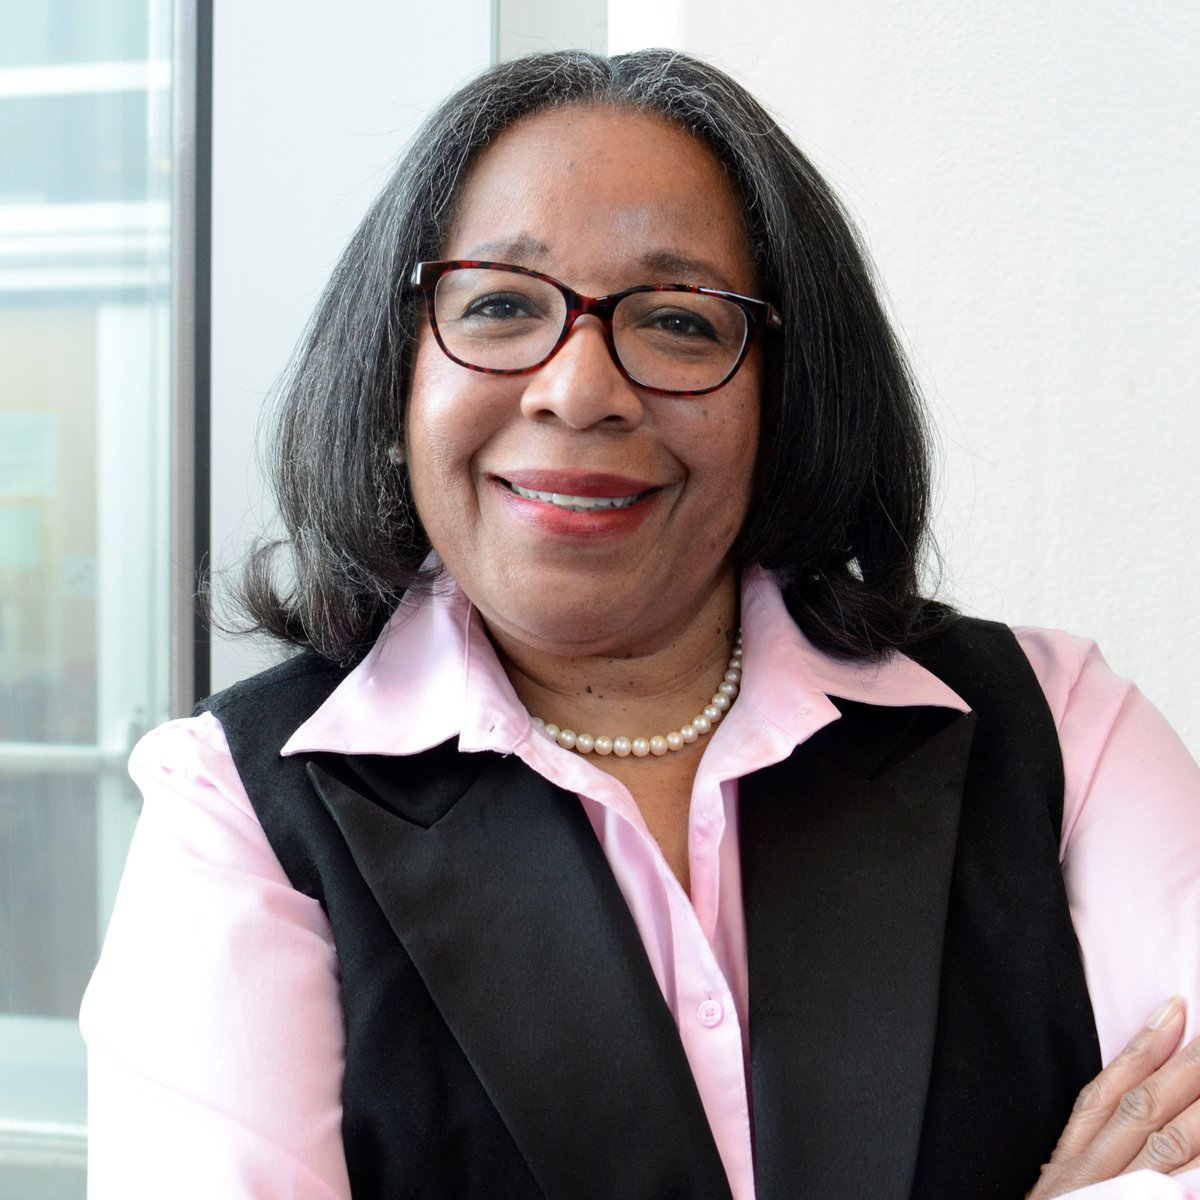 """On March 3 hear from @Alzheimers_NIH's  Dr. Michele Evans [@evansmkt ] speak on """"The complex interplay of biology and social determinates of #health : Stories from the streets of #Baltimore ."""" Learn more:  http://bit.ly/3avWpDk   #NIMHD2020"""